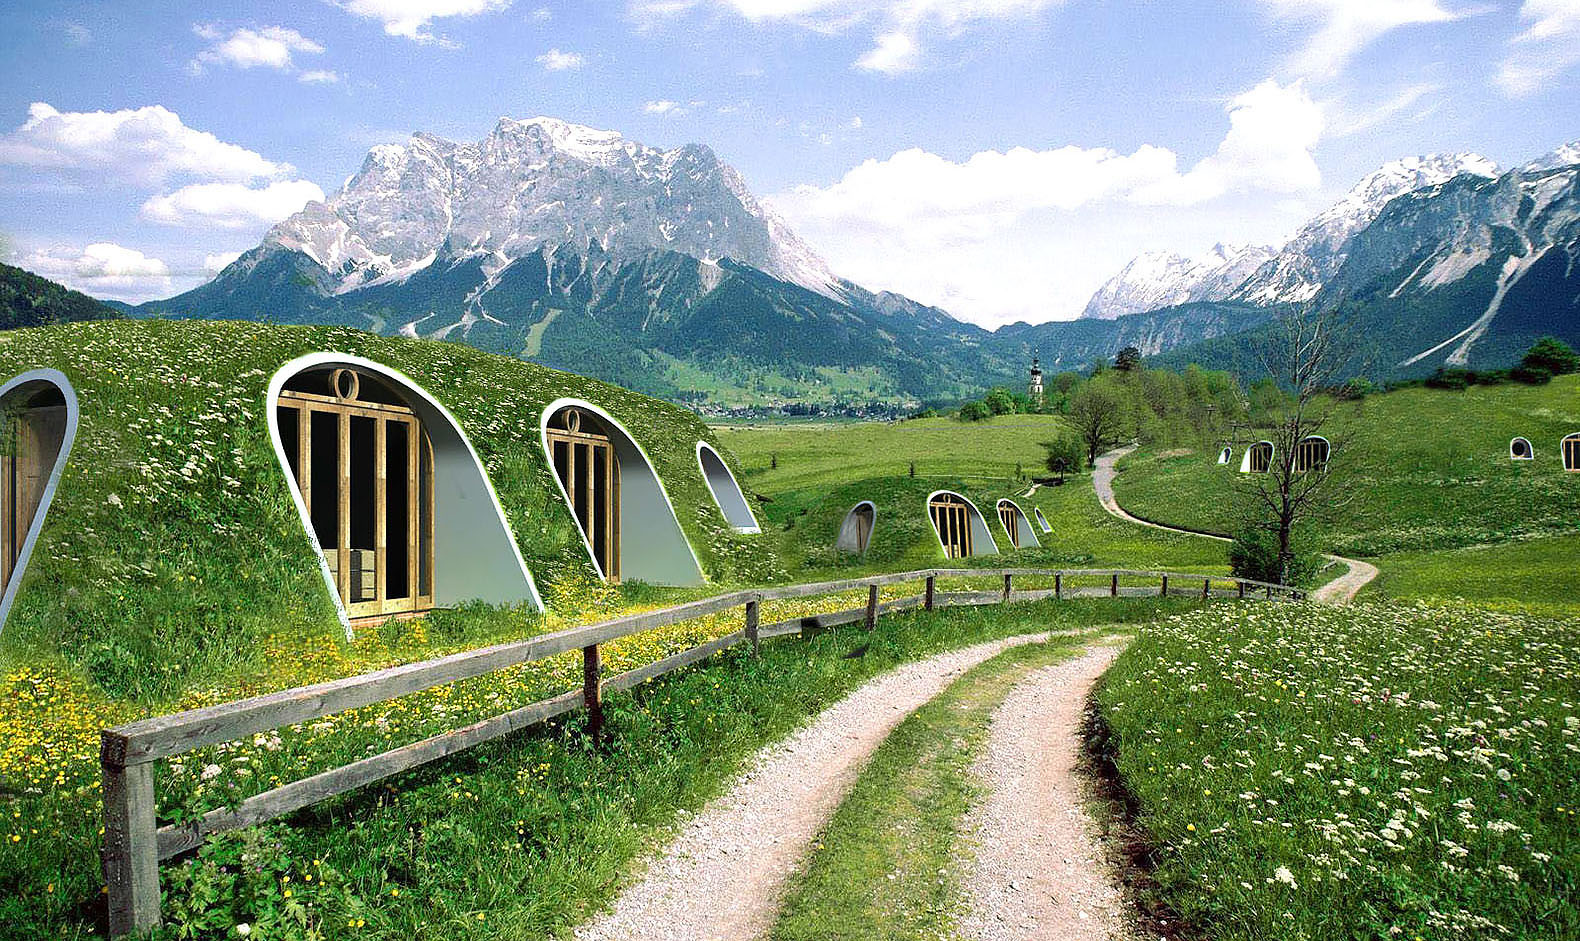 6 tiny homes under 50 000 you can buy right now inhabitat green design innovation. Black Bedroom Furniture Sets. Home Design Ideas